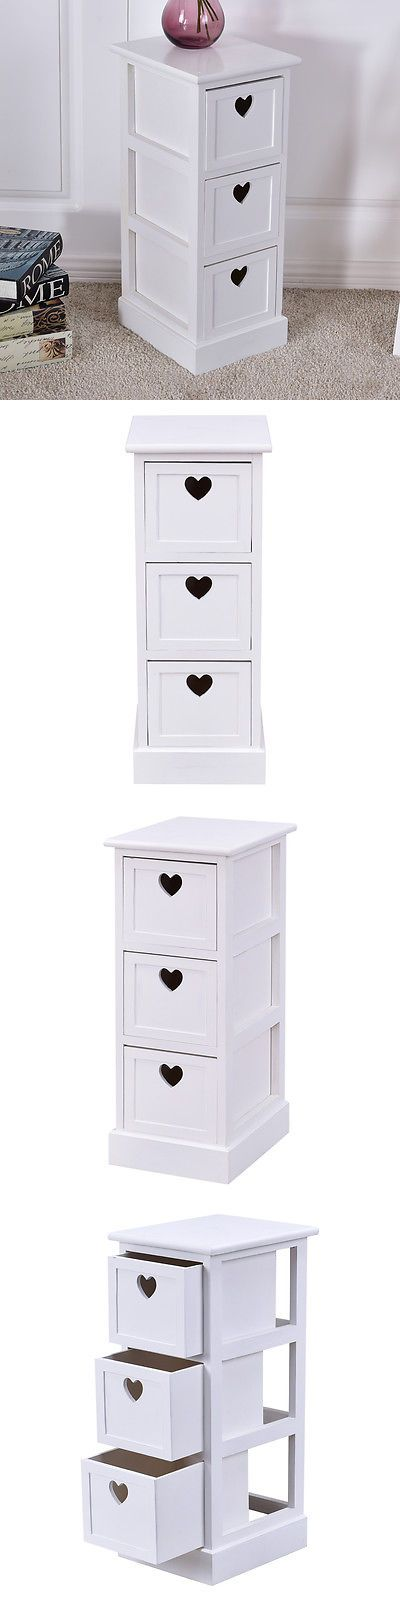 Nightstands 38199: White Wooden Bedside Table Nightstand Cabinet Bedroom Chest W 3 Storage Drawers -> BUY IT NOW ONLY: $38.99 on eBay!